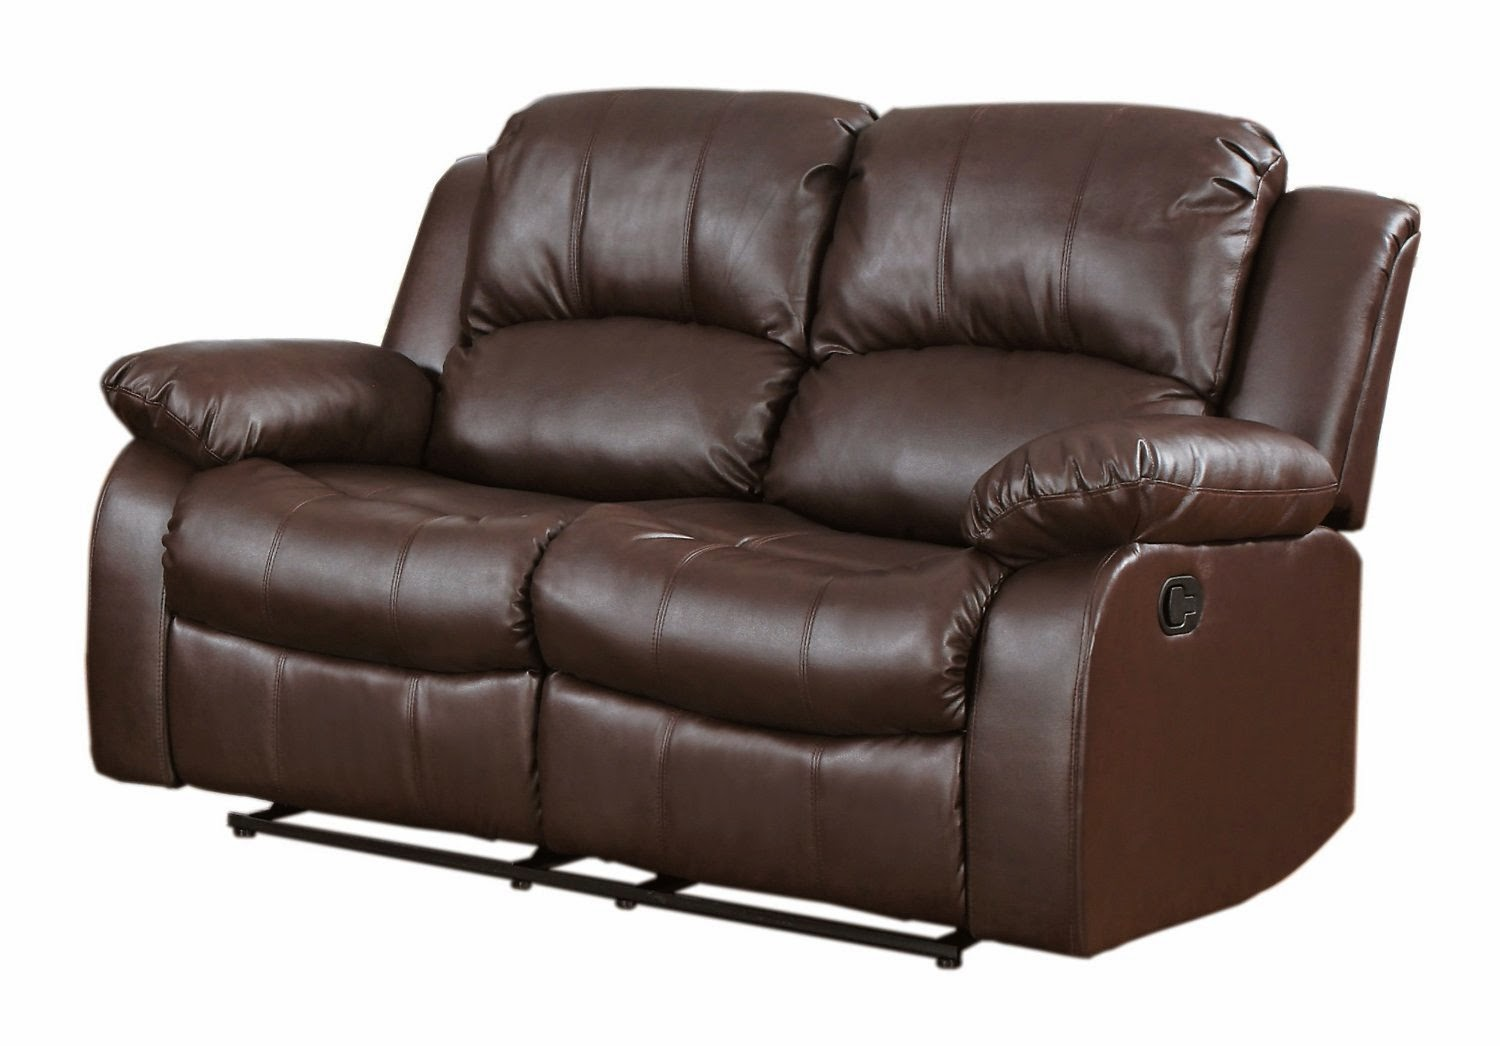 Reclining sofa loveseat and chair sets two seat reclining for Leather sofa and loveseat set